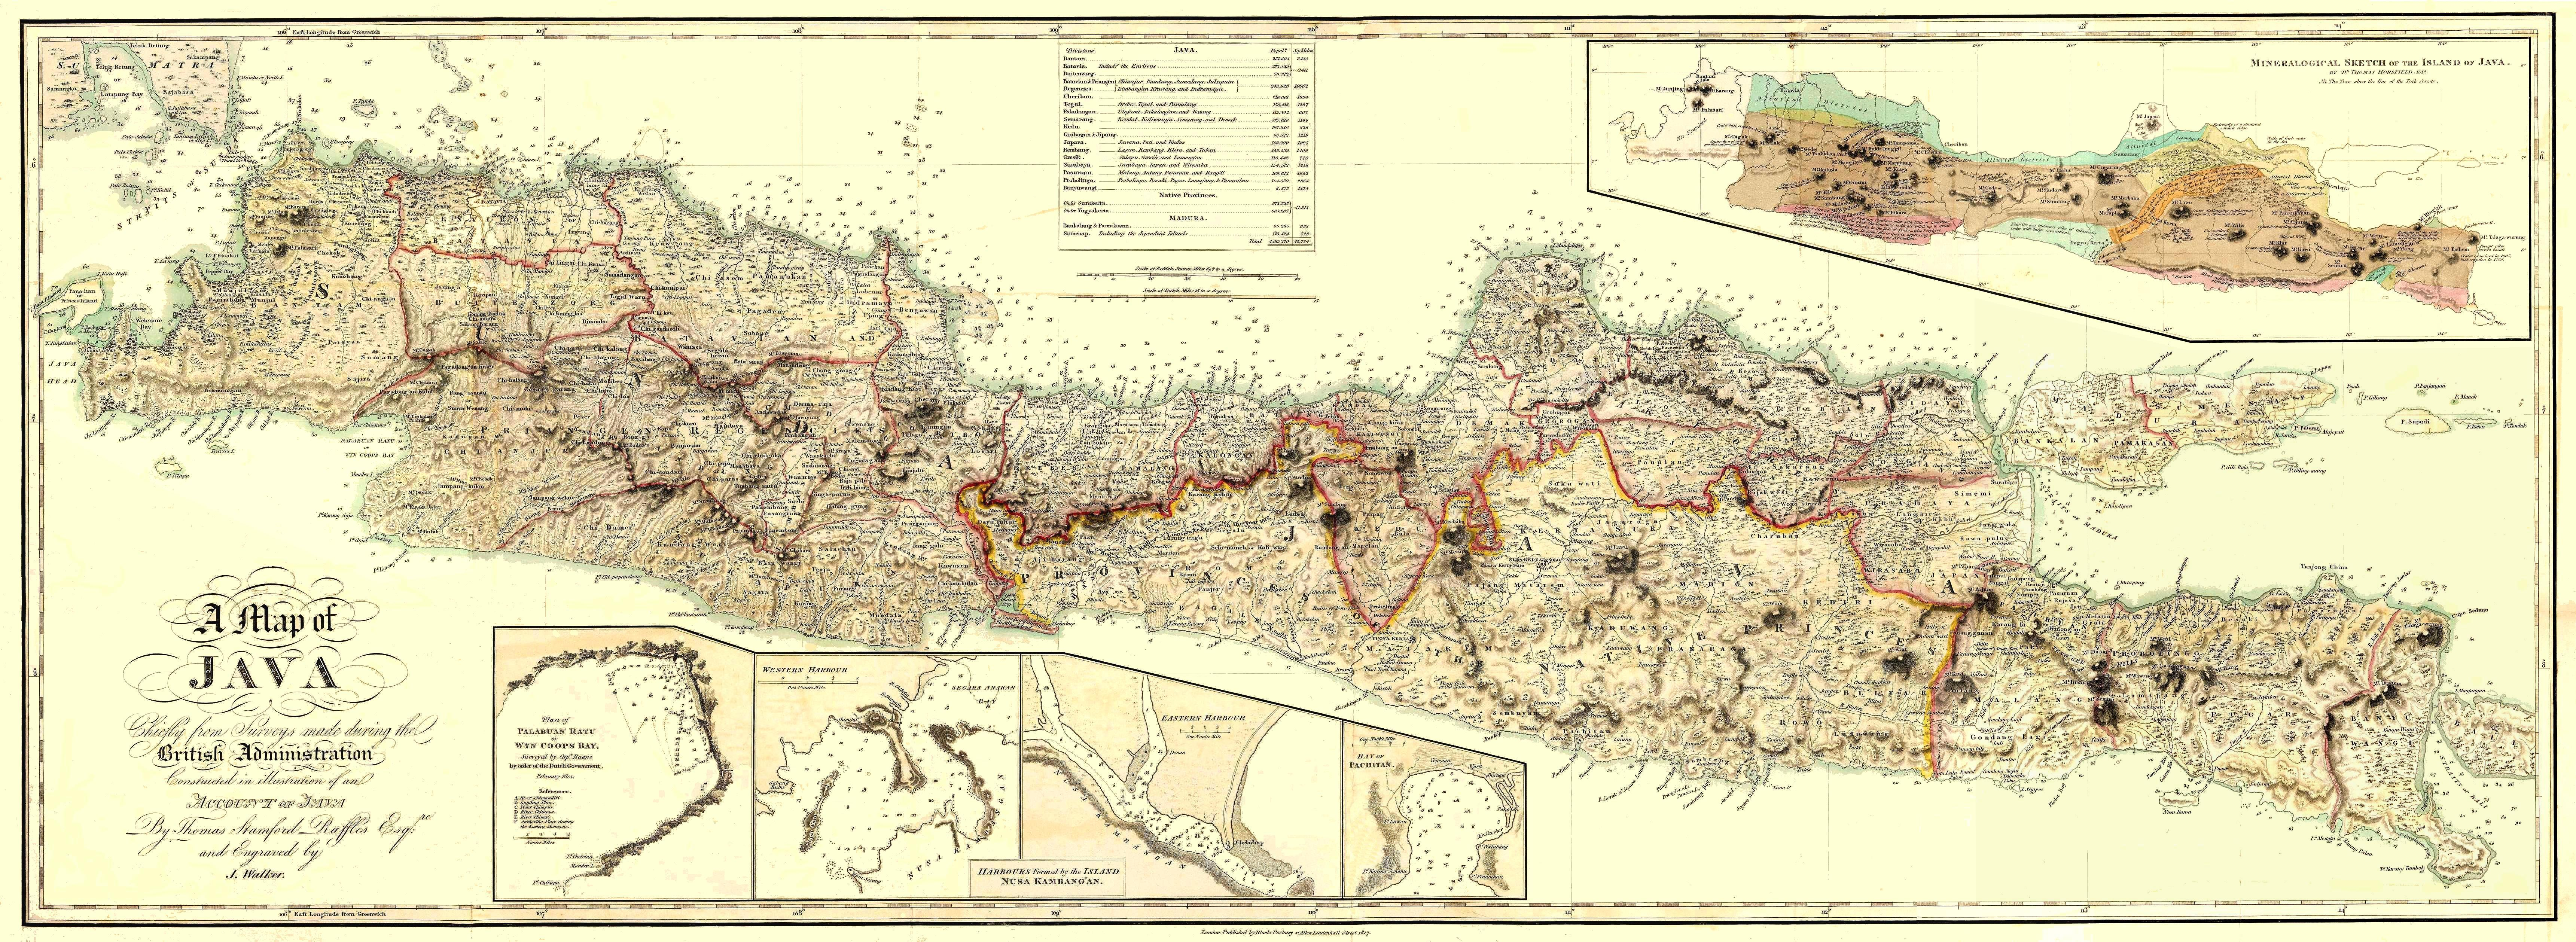 Map of Java based on surveys by Sir Stamford Raffles.